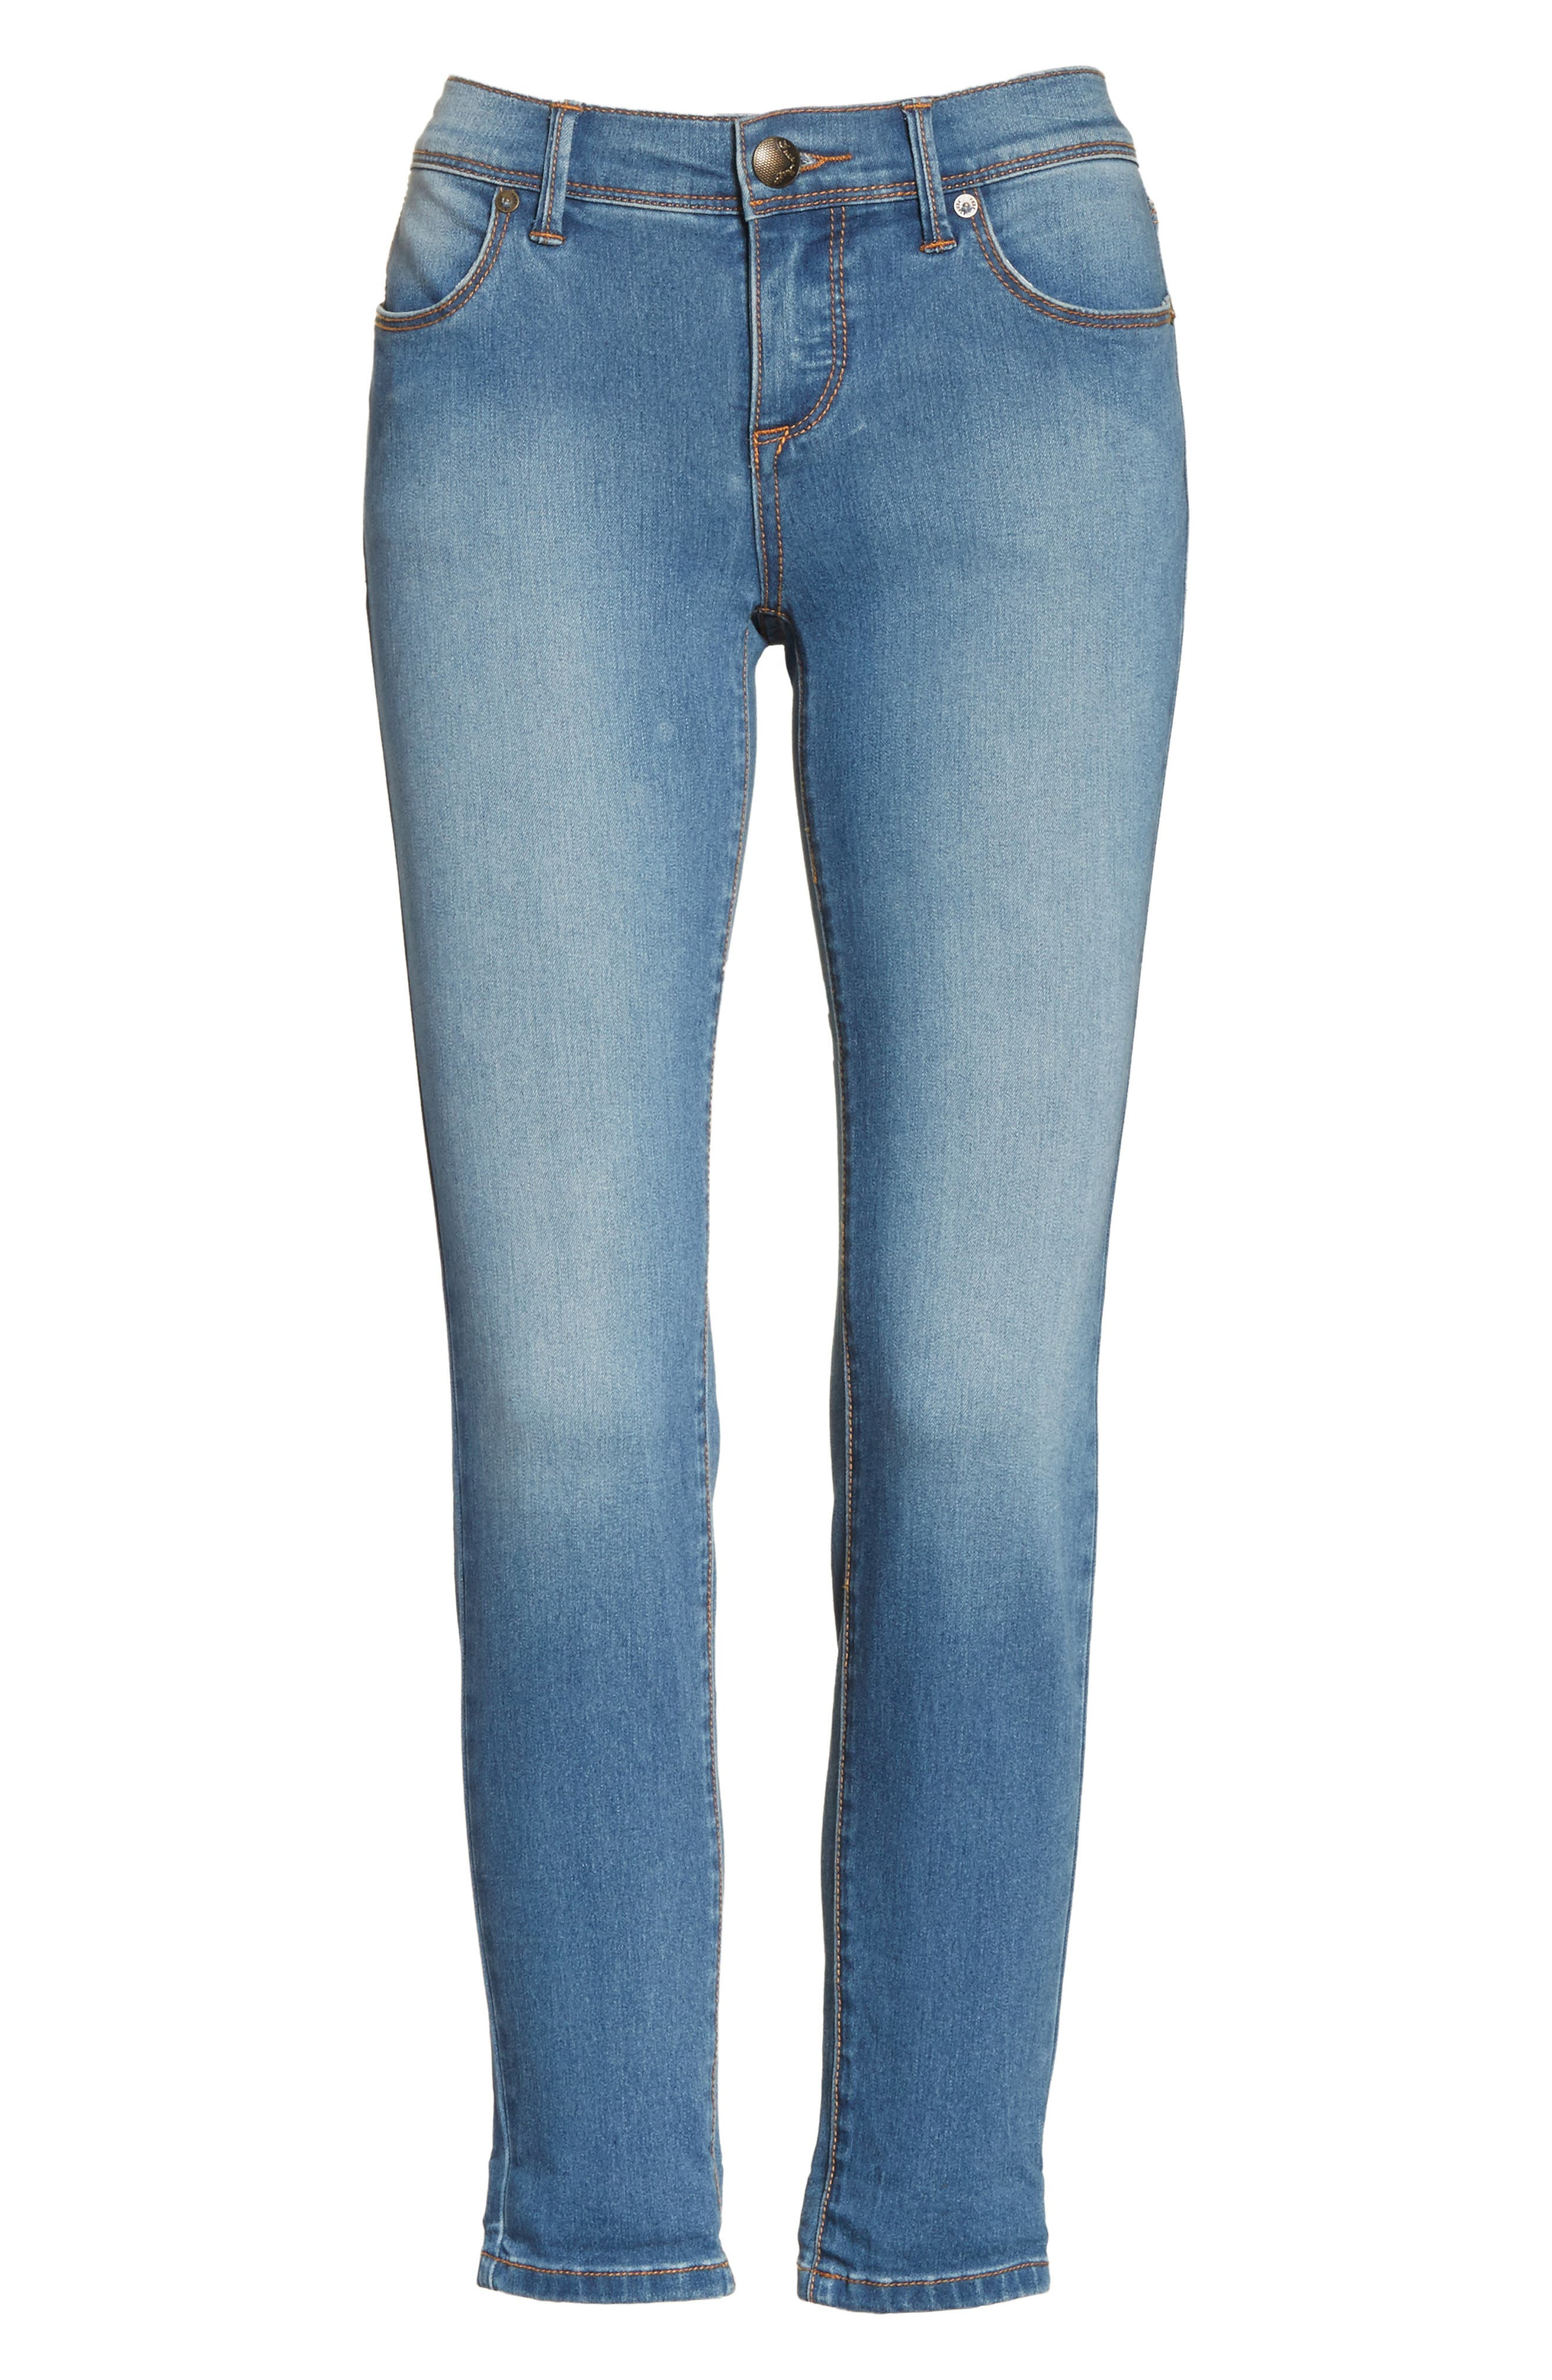 Gummy High Waist Jeans,                             Alternate thumbnail 7, color,